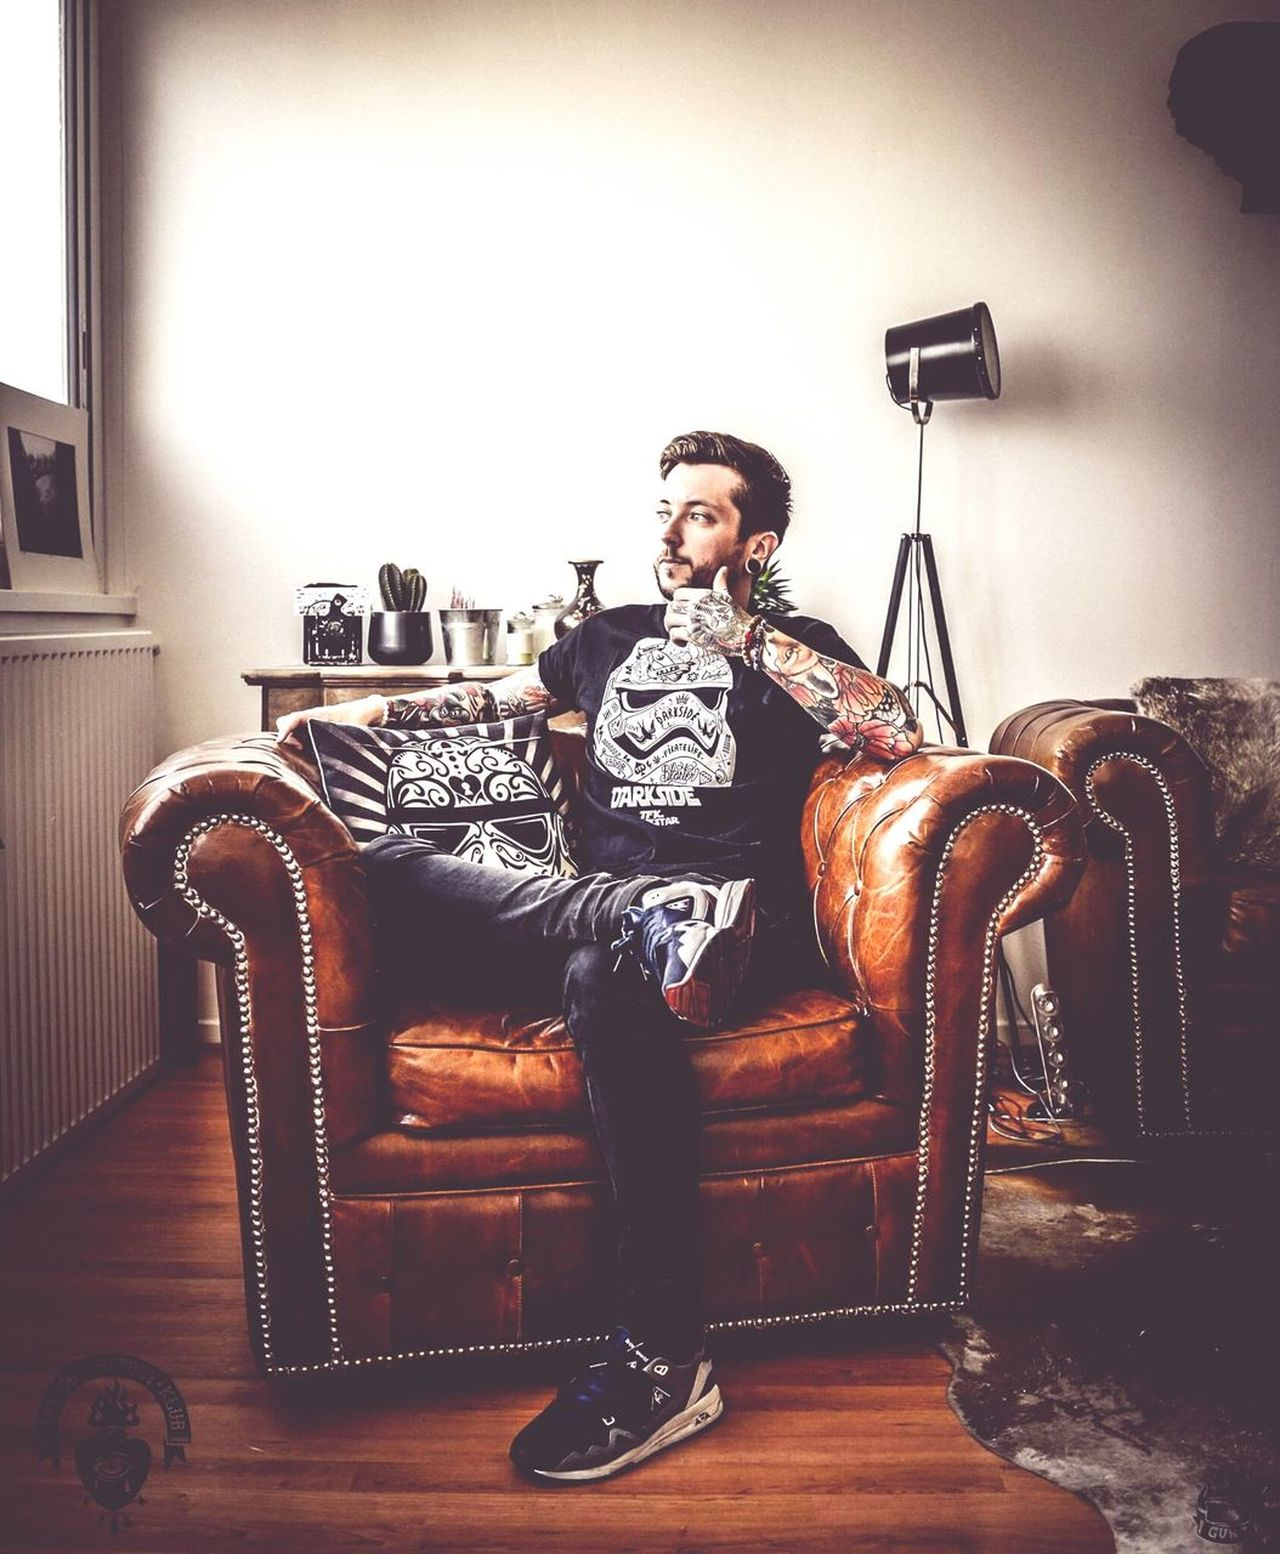 Portrait Chair Men Tattooed Inked Photooftheday Tattoos Tattoo Life Fashion Photography Troopers Guntphotoart Tattoo Factory Klub Frenchboy YouTube